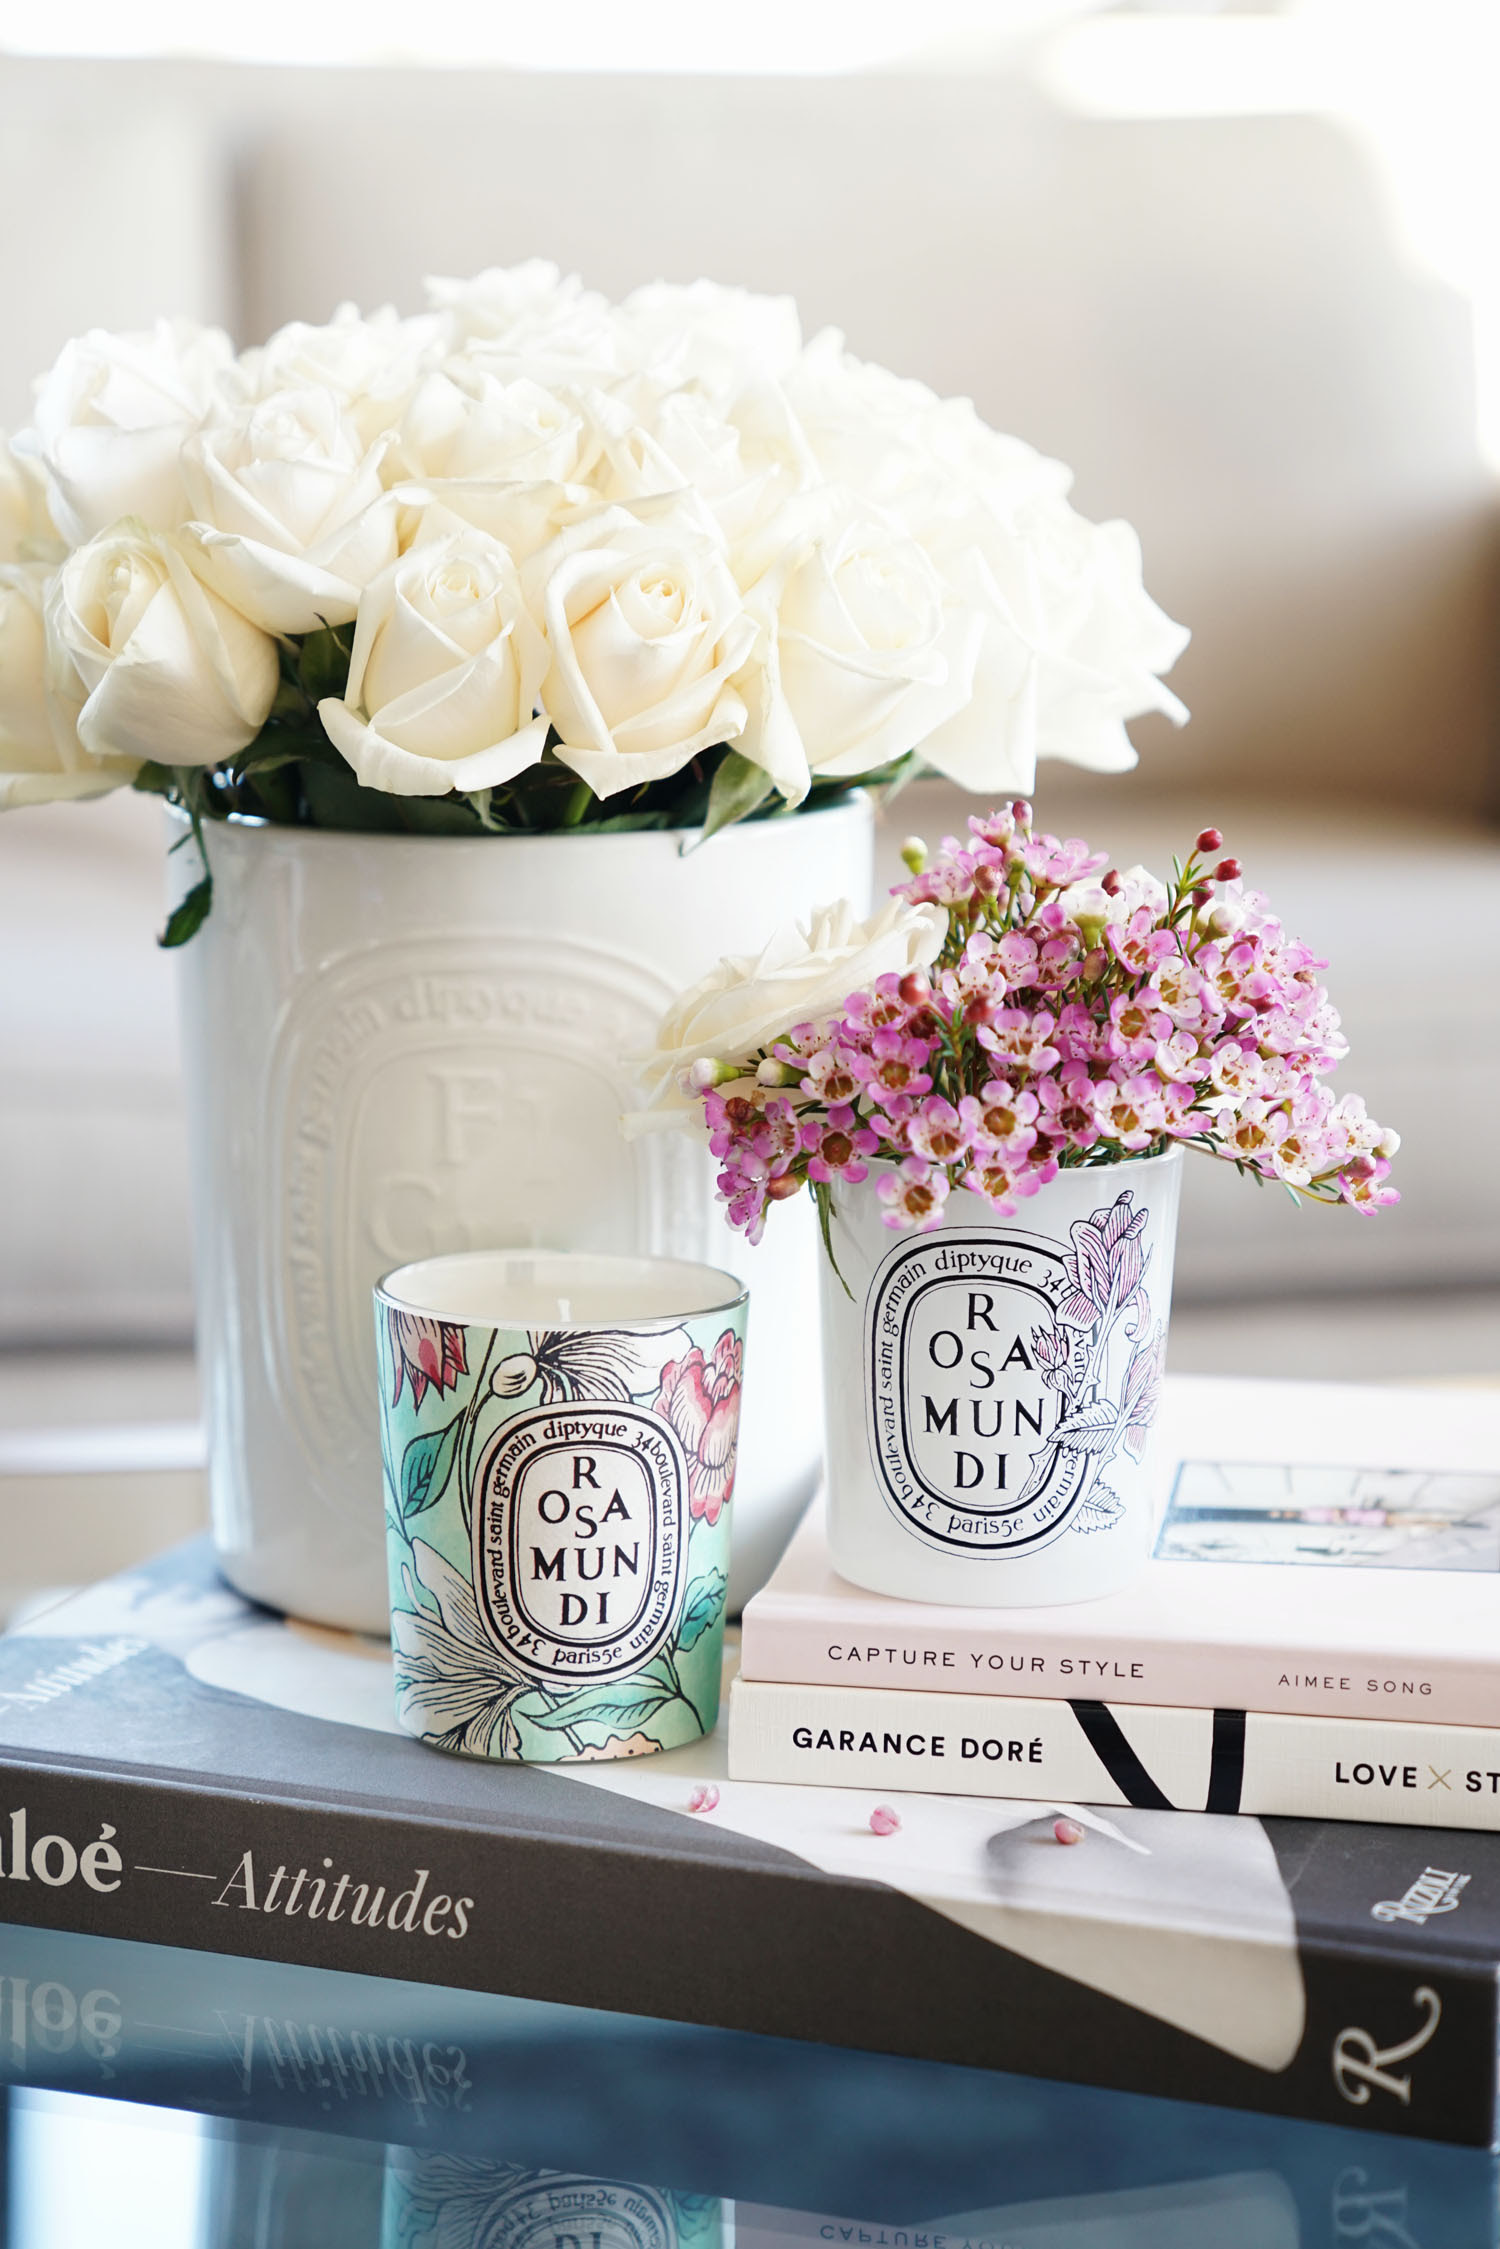 Diptyque Rosa Mundi Candle 2017 Launch | The Beauty Look Book